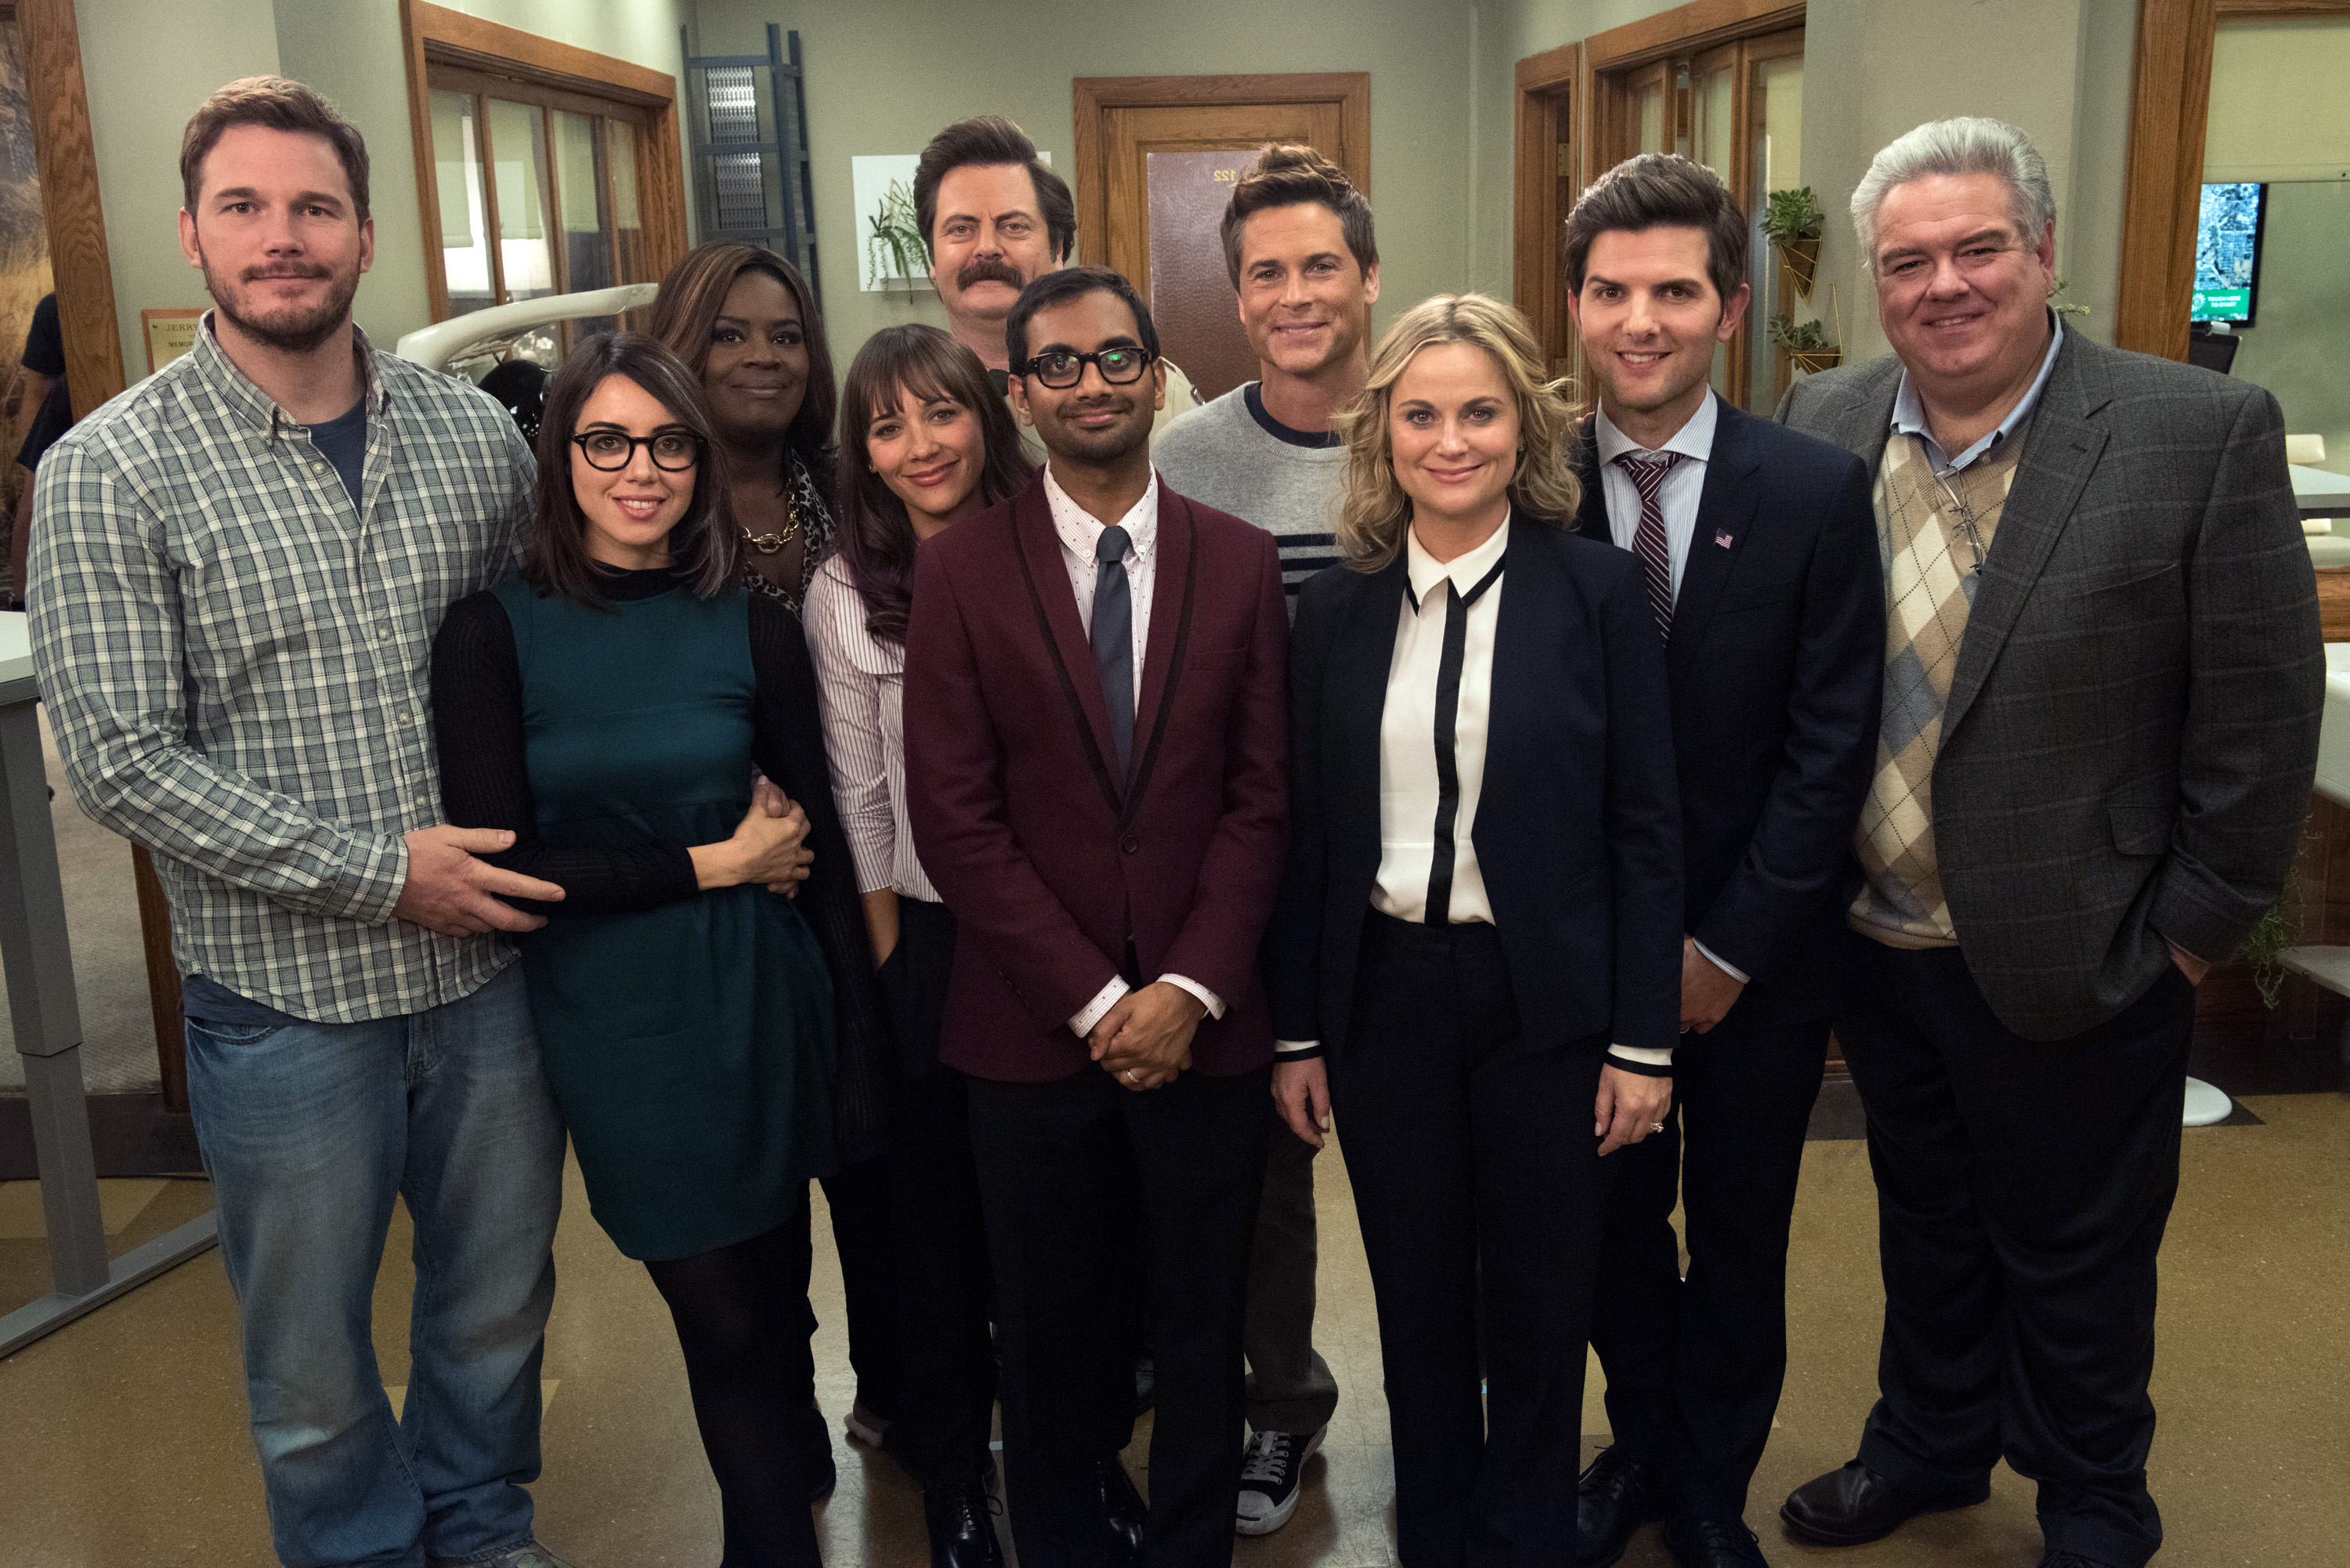 The cast of 'Parks and Recreation' in the show's 7th season.